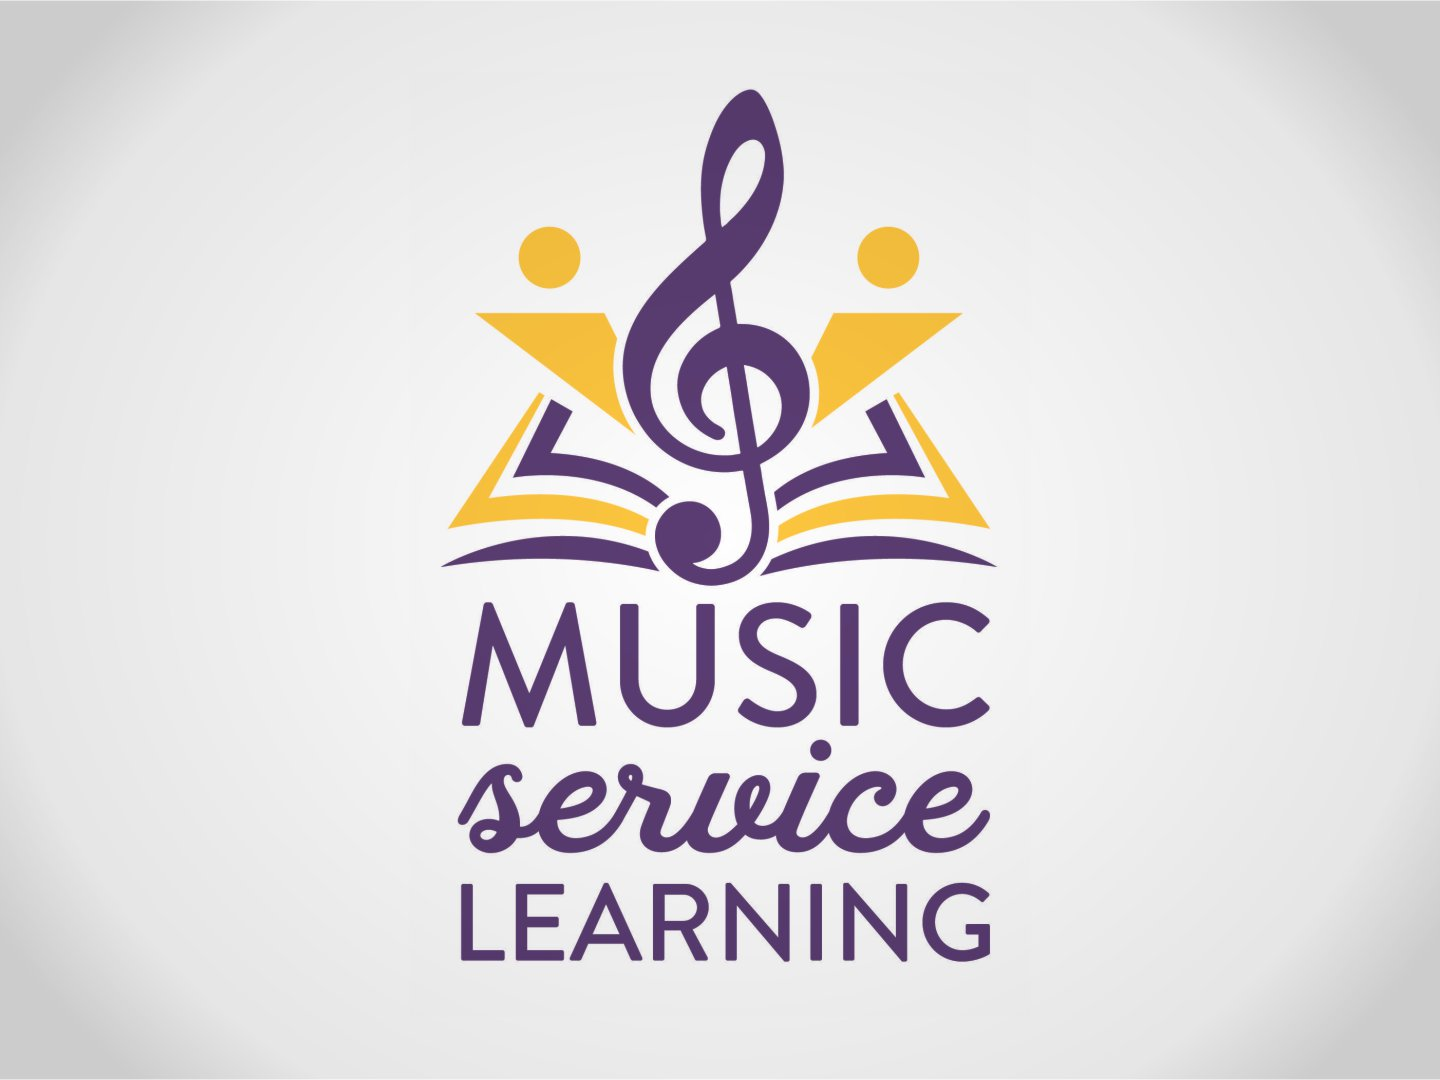 Music Service Learning